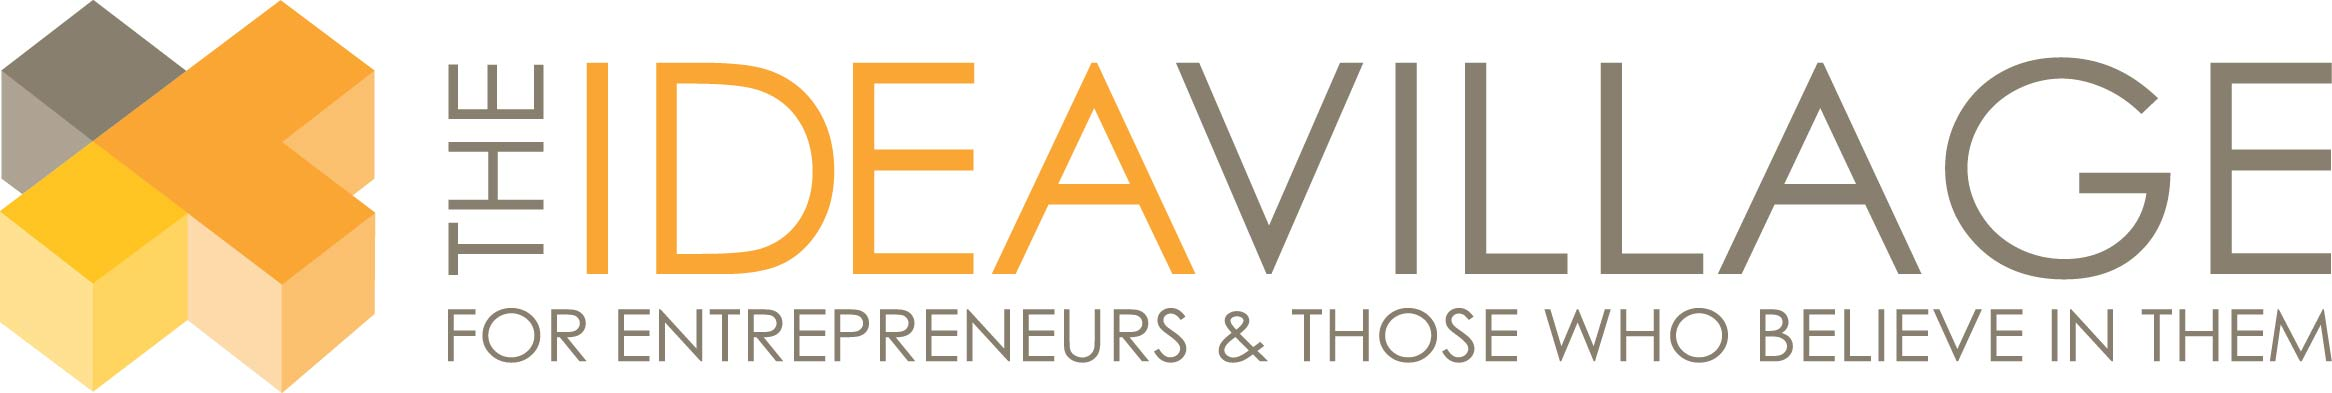 Founded in 2000, The Idea Village formalized in 2002 as an independent 501©(3) nonprofit dedicated to engaging our community to embrace innovation, entrepreneurship, and new thinking. The Idea Village has established itself as a globally-recognized leader in developing place-based entrepreneurial ecosystems